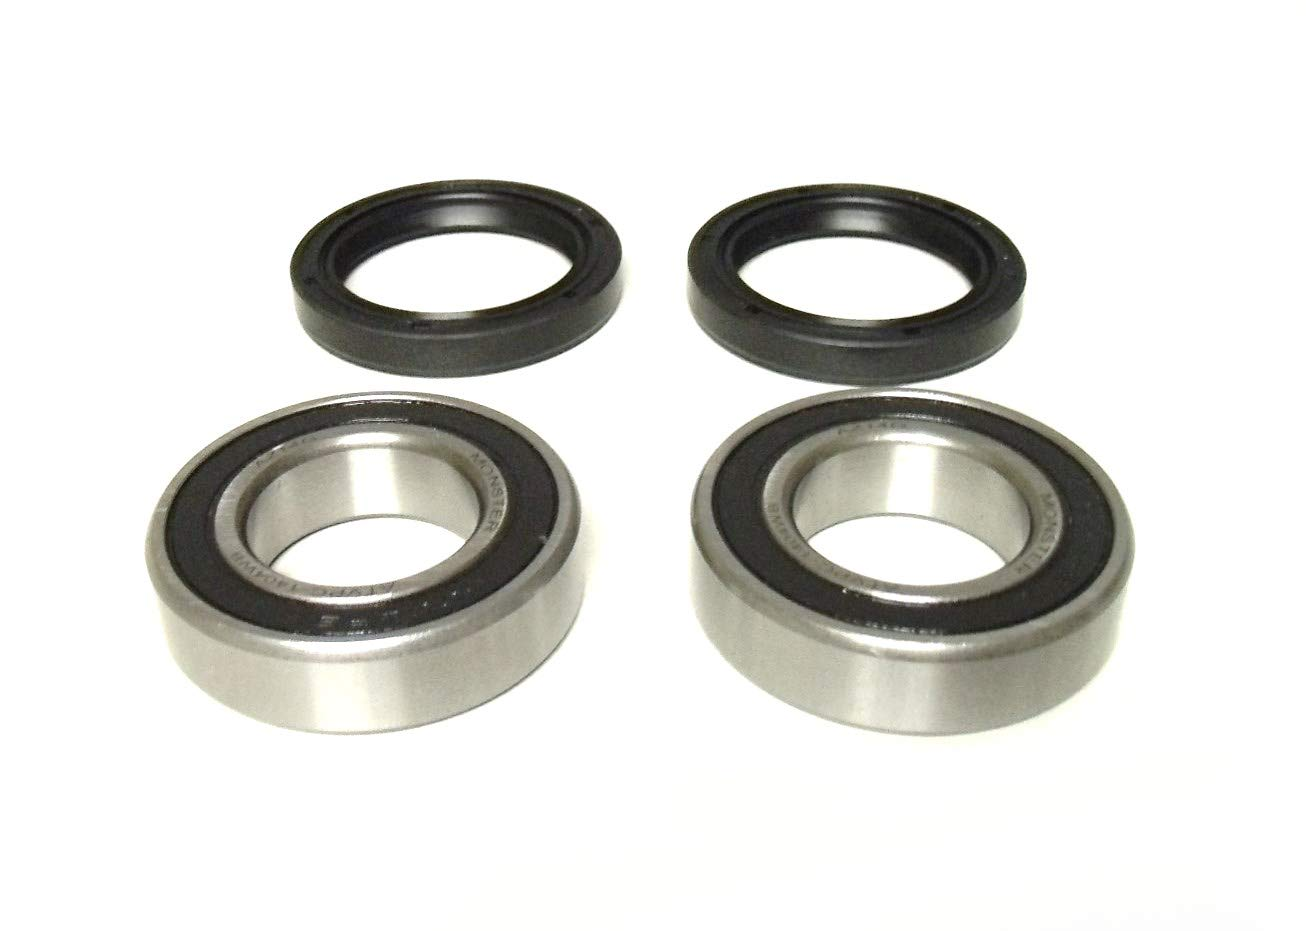 4 QTY Front Wheel Bearing for Kawasaki Mule 3010 4010 2510 4x4